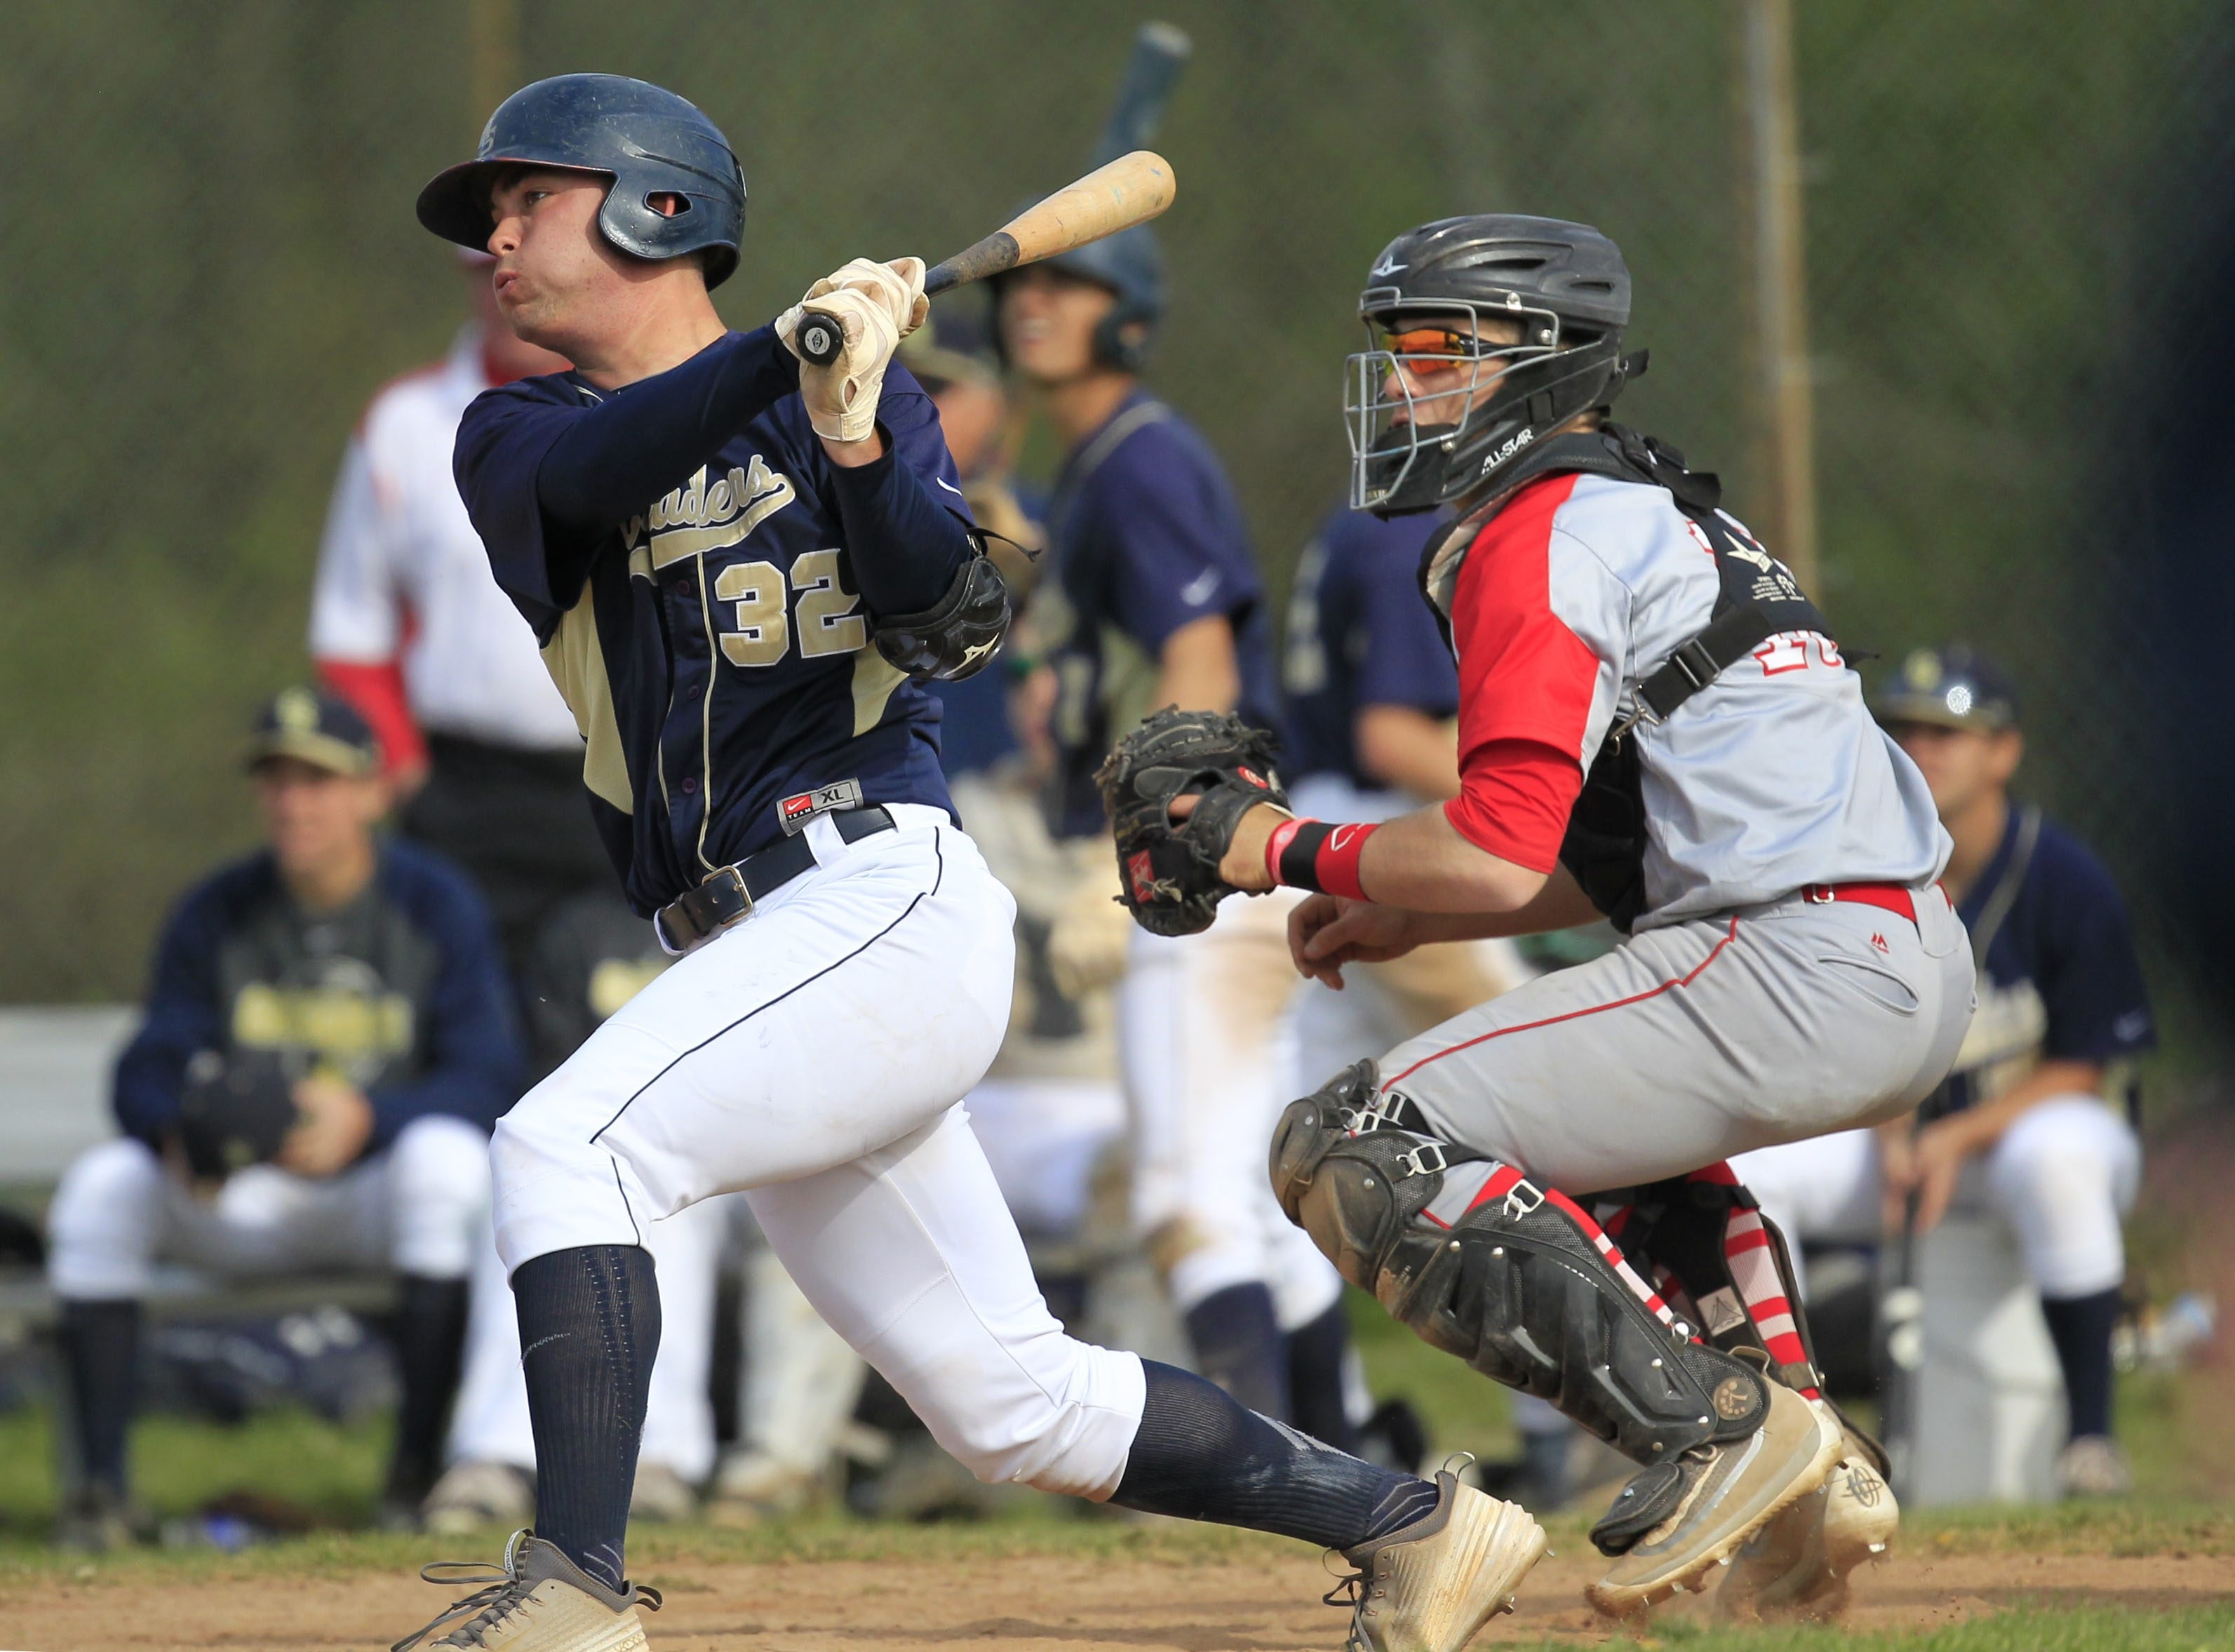 Canisius High School's Dan Dallas hits a double against St. Francis in Tuesday's game between two top local teams.